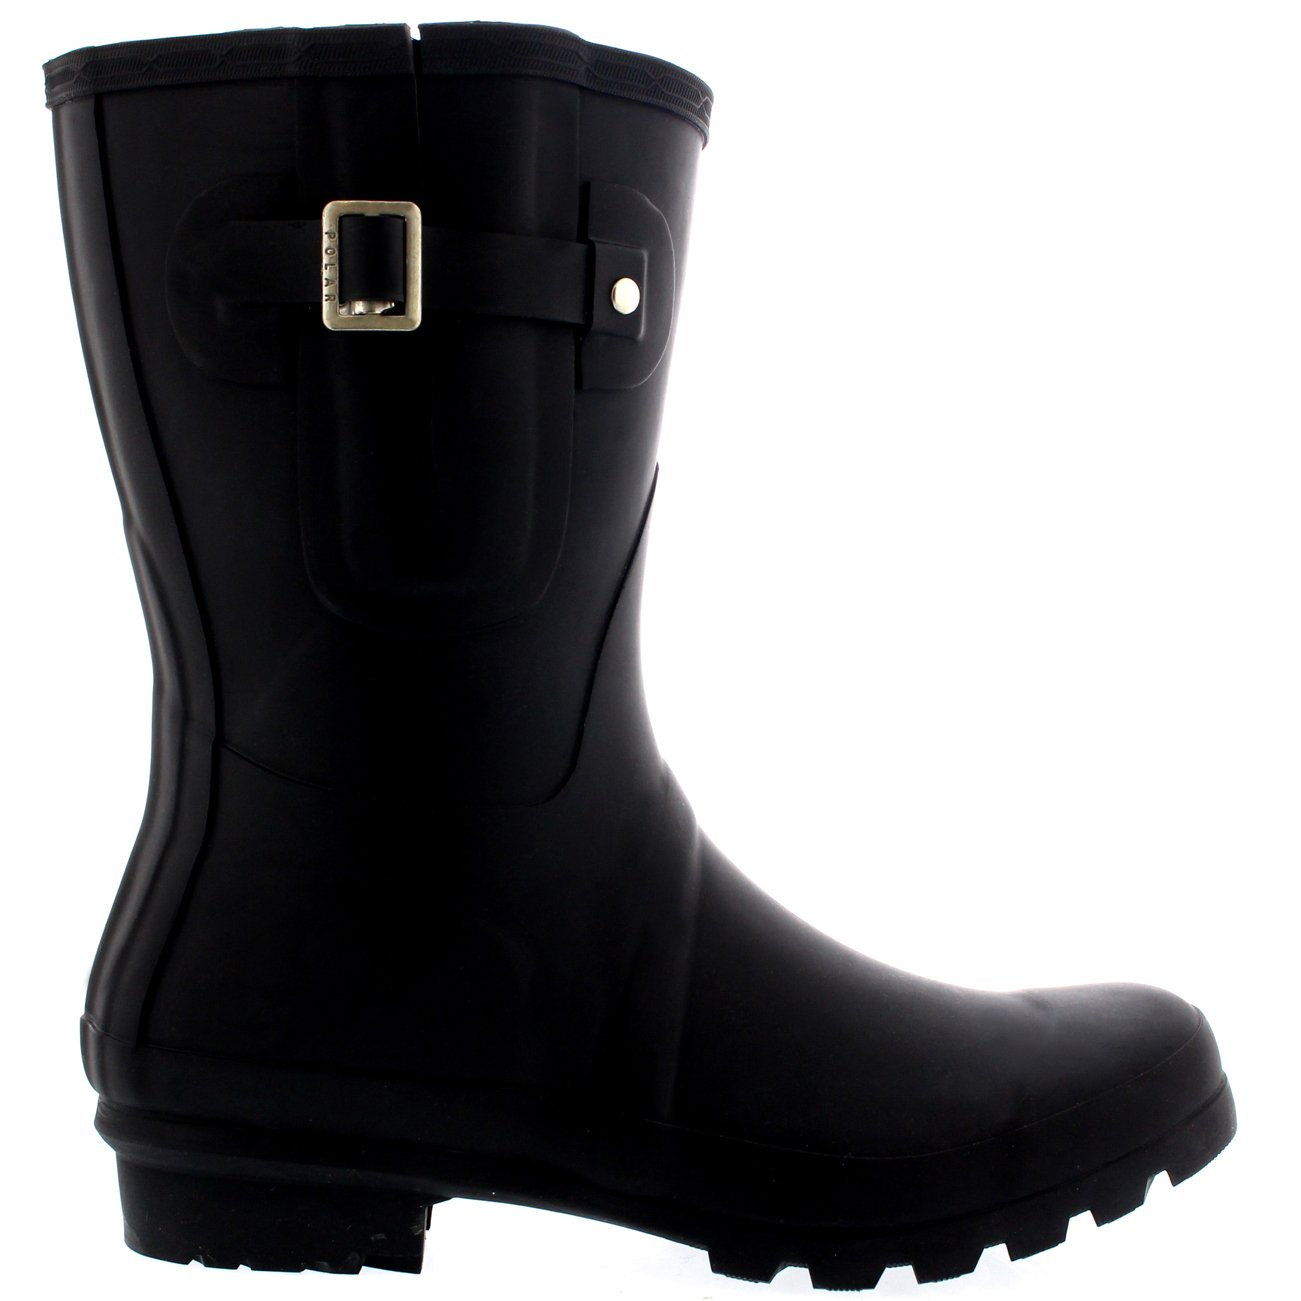 Polar Mens Adjustable Side Rubber Waterproof Rain Wellingtons Boots - Black - US13/EU46 - BL0232 by Polar Products (Image #4)